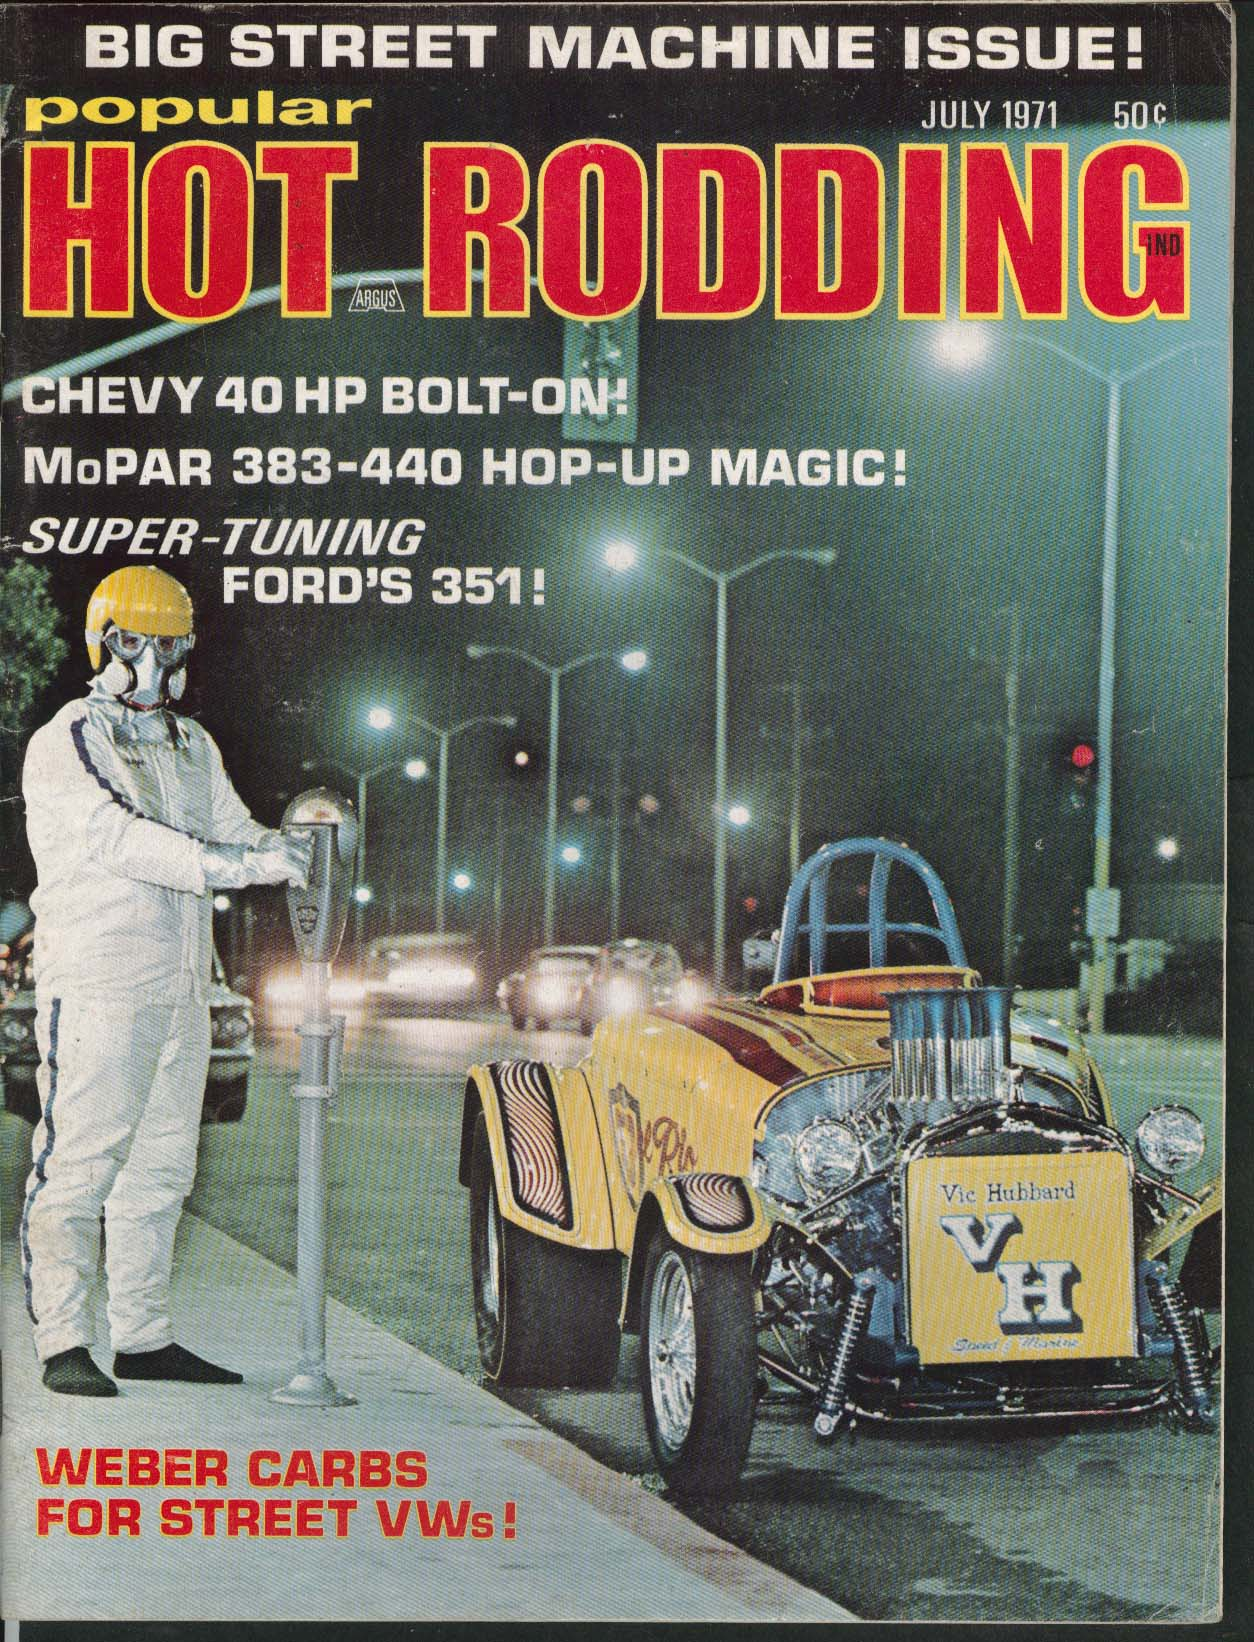 POPULAR HOT RODDING Chevy 40HP MoPar 383-440 Ford 351 ++ 7 1971